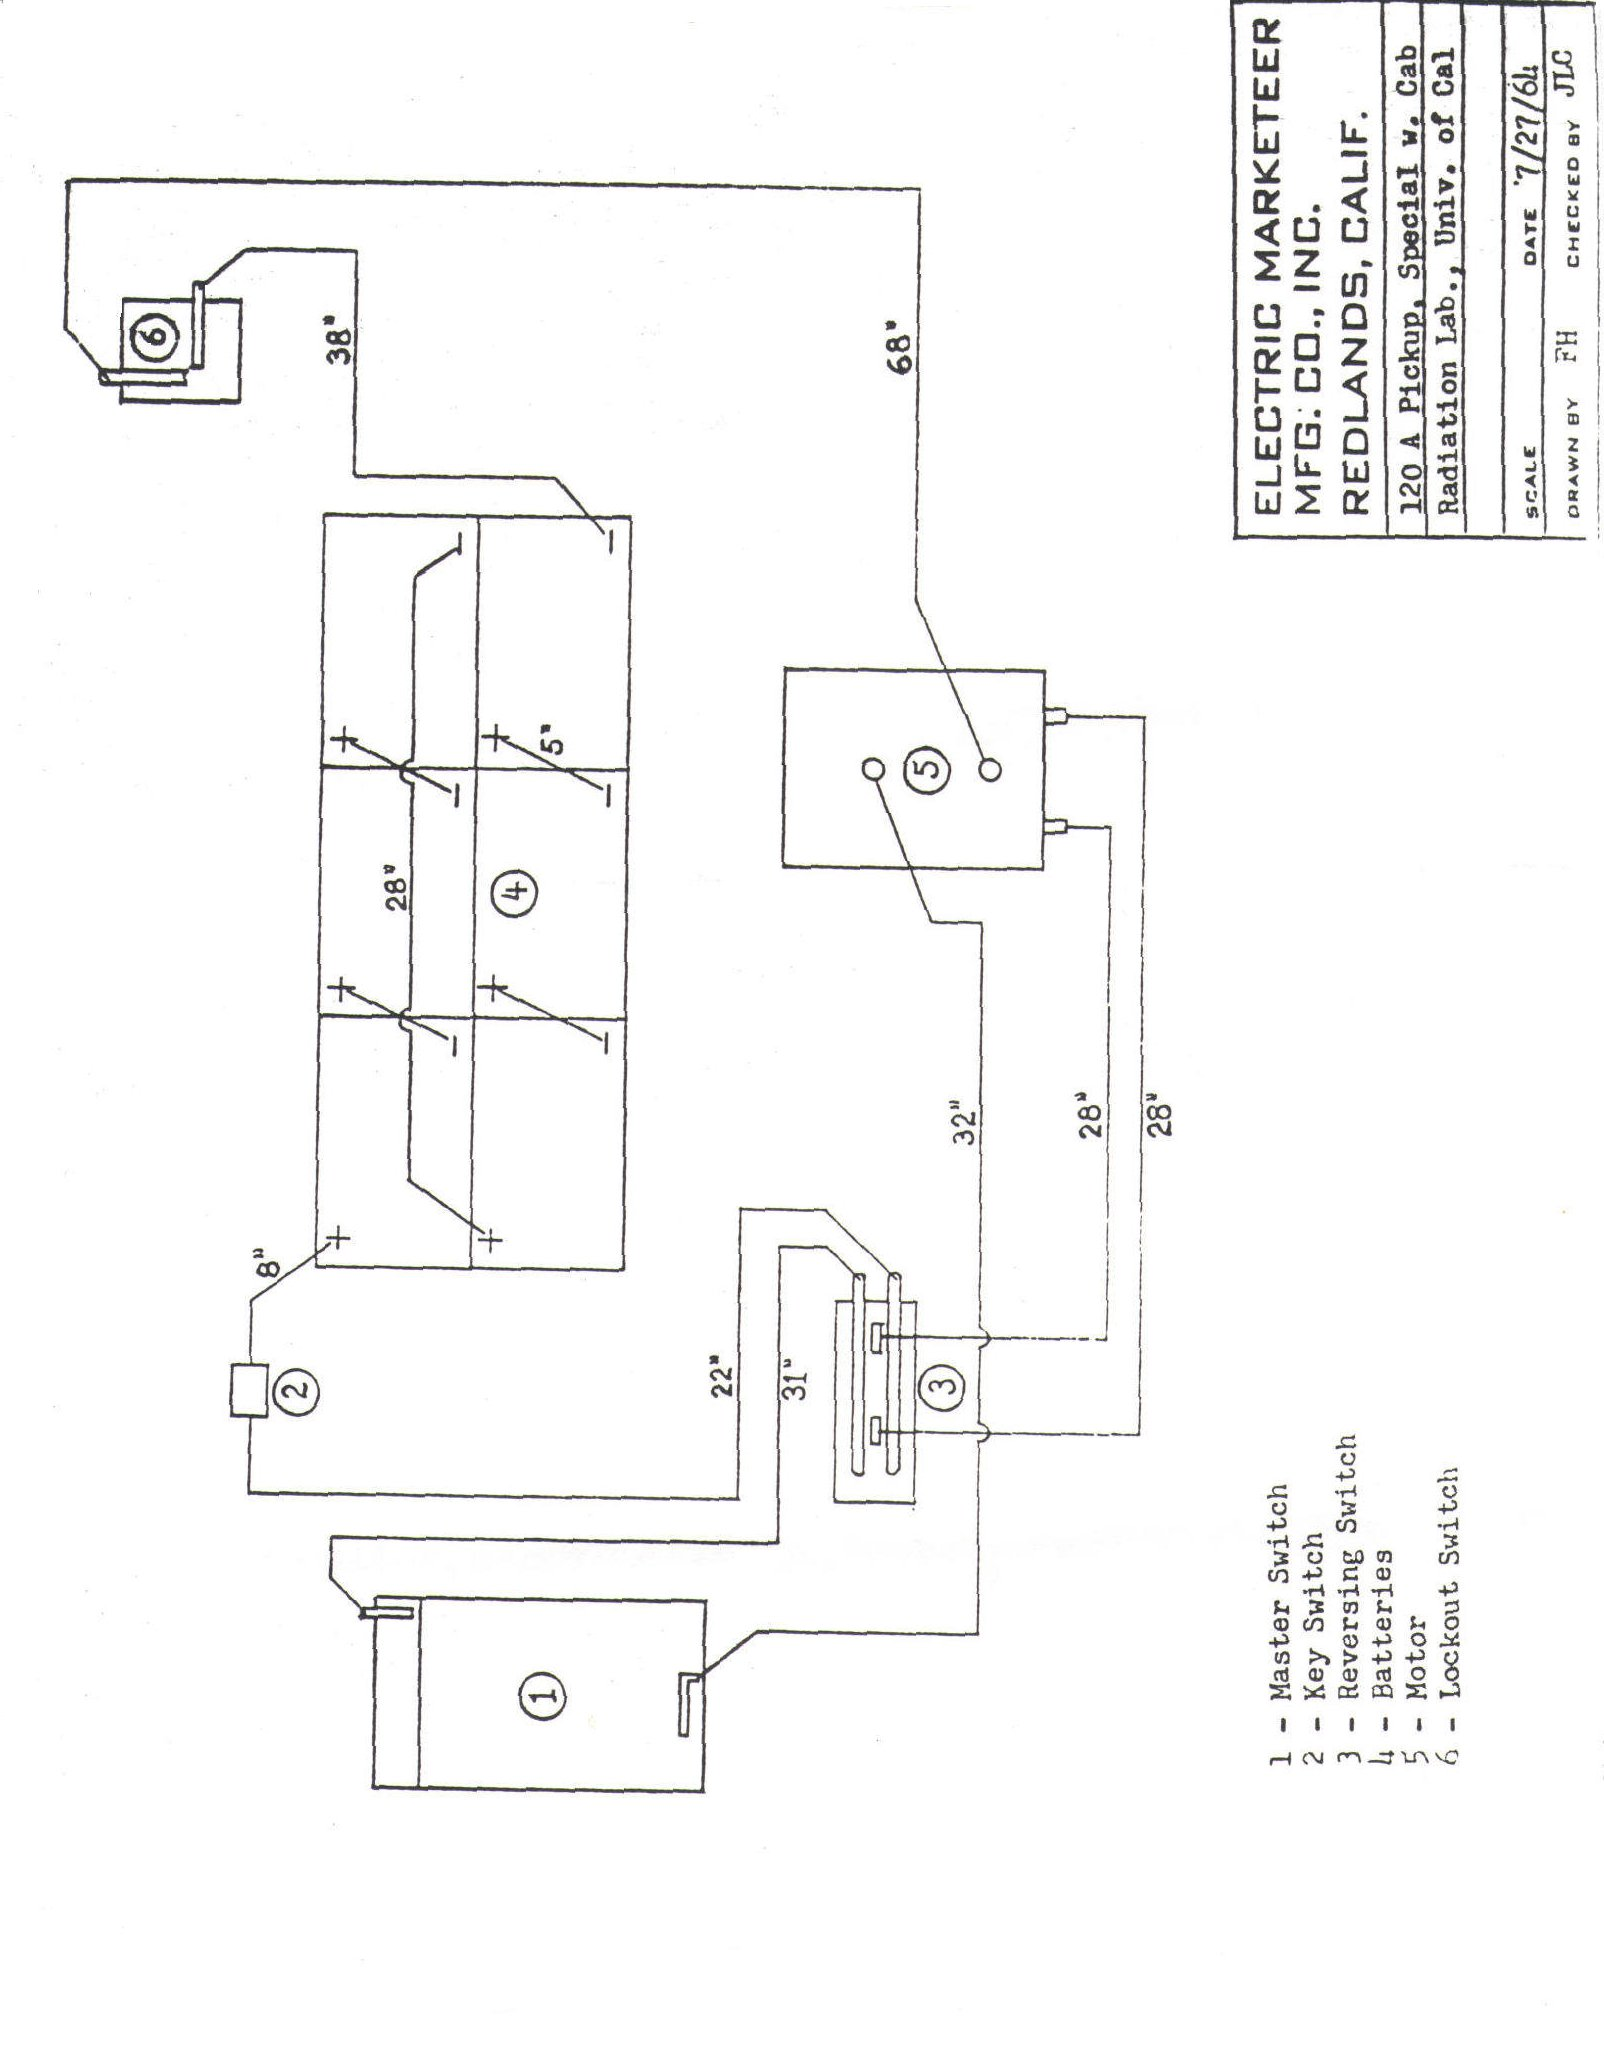 hight resolution of hight resolution of melex 112 golf cart wiring diagram trusted wiring diagram melex golf cart wiring